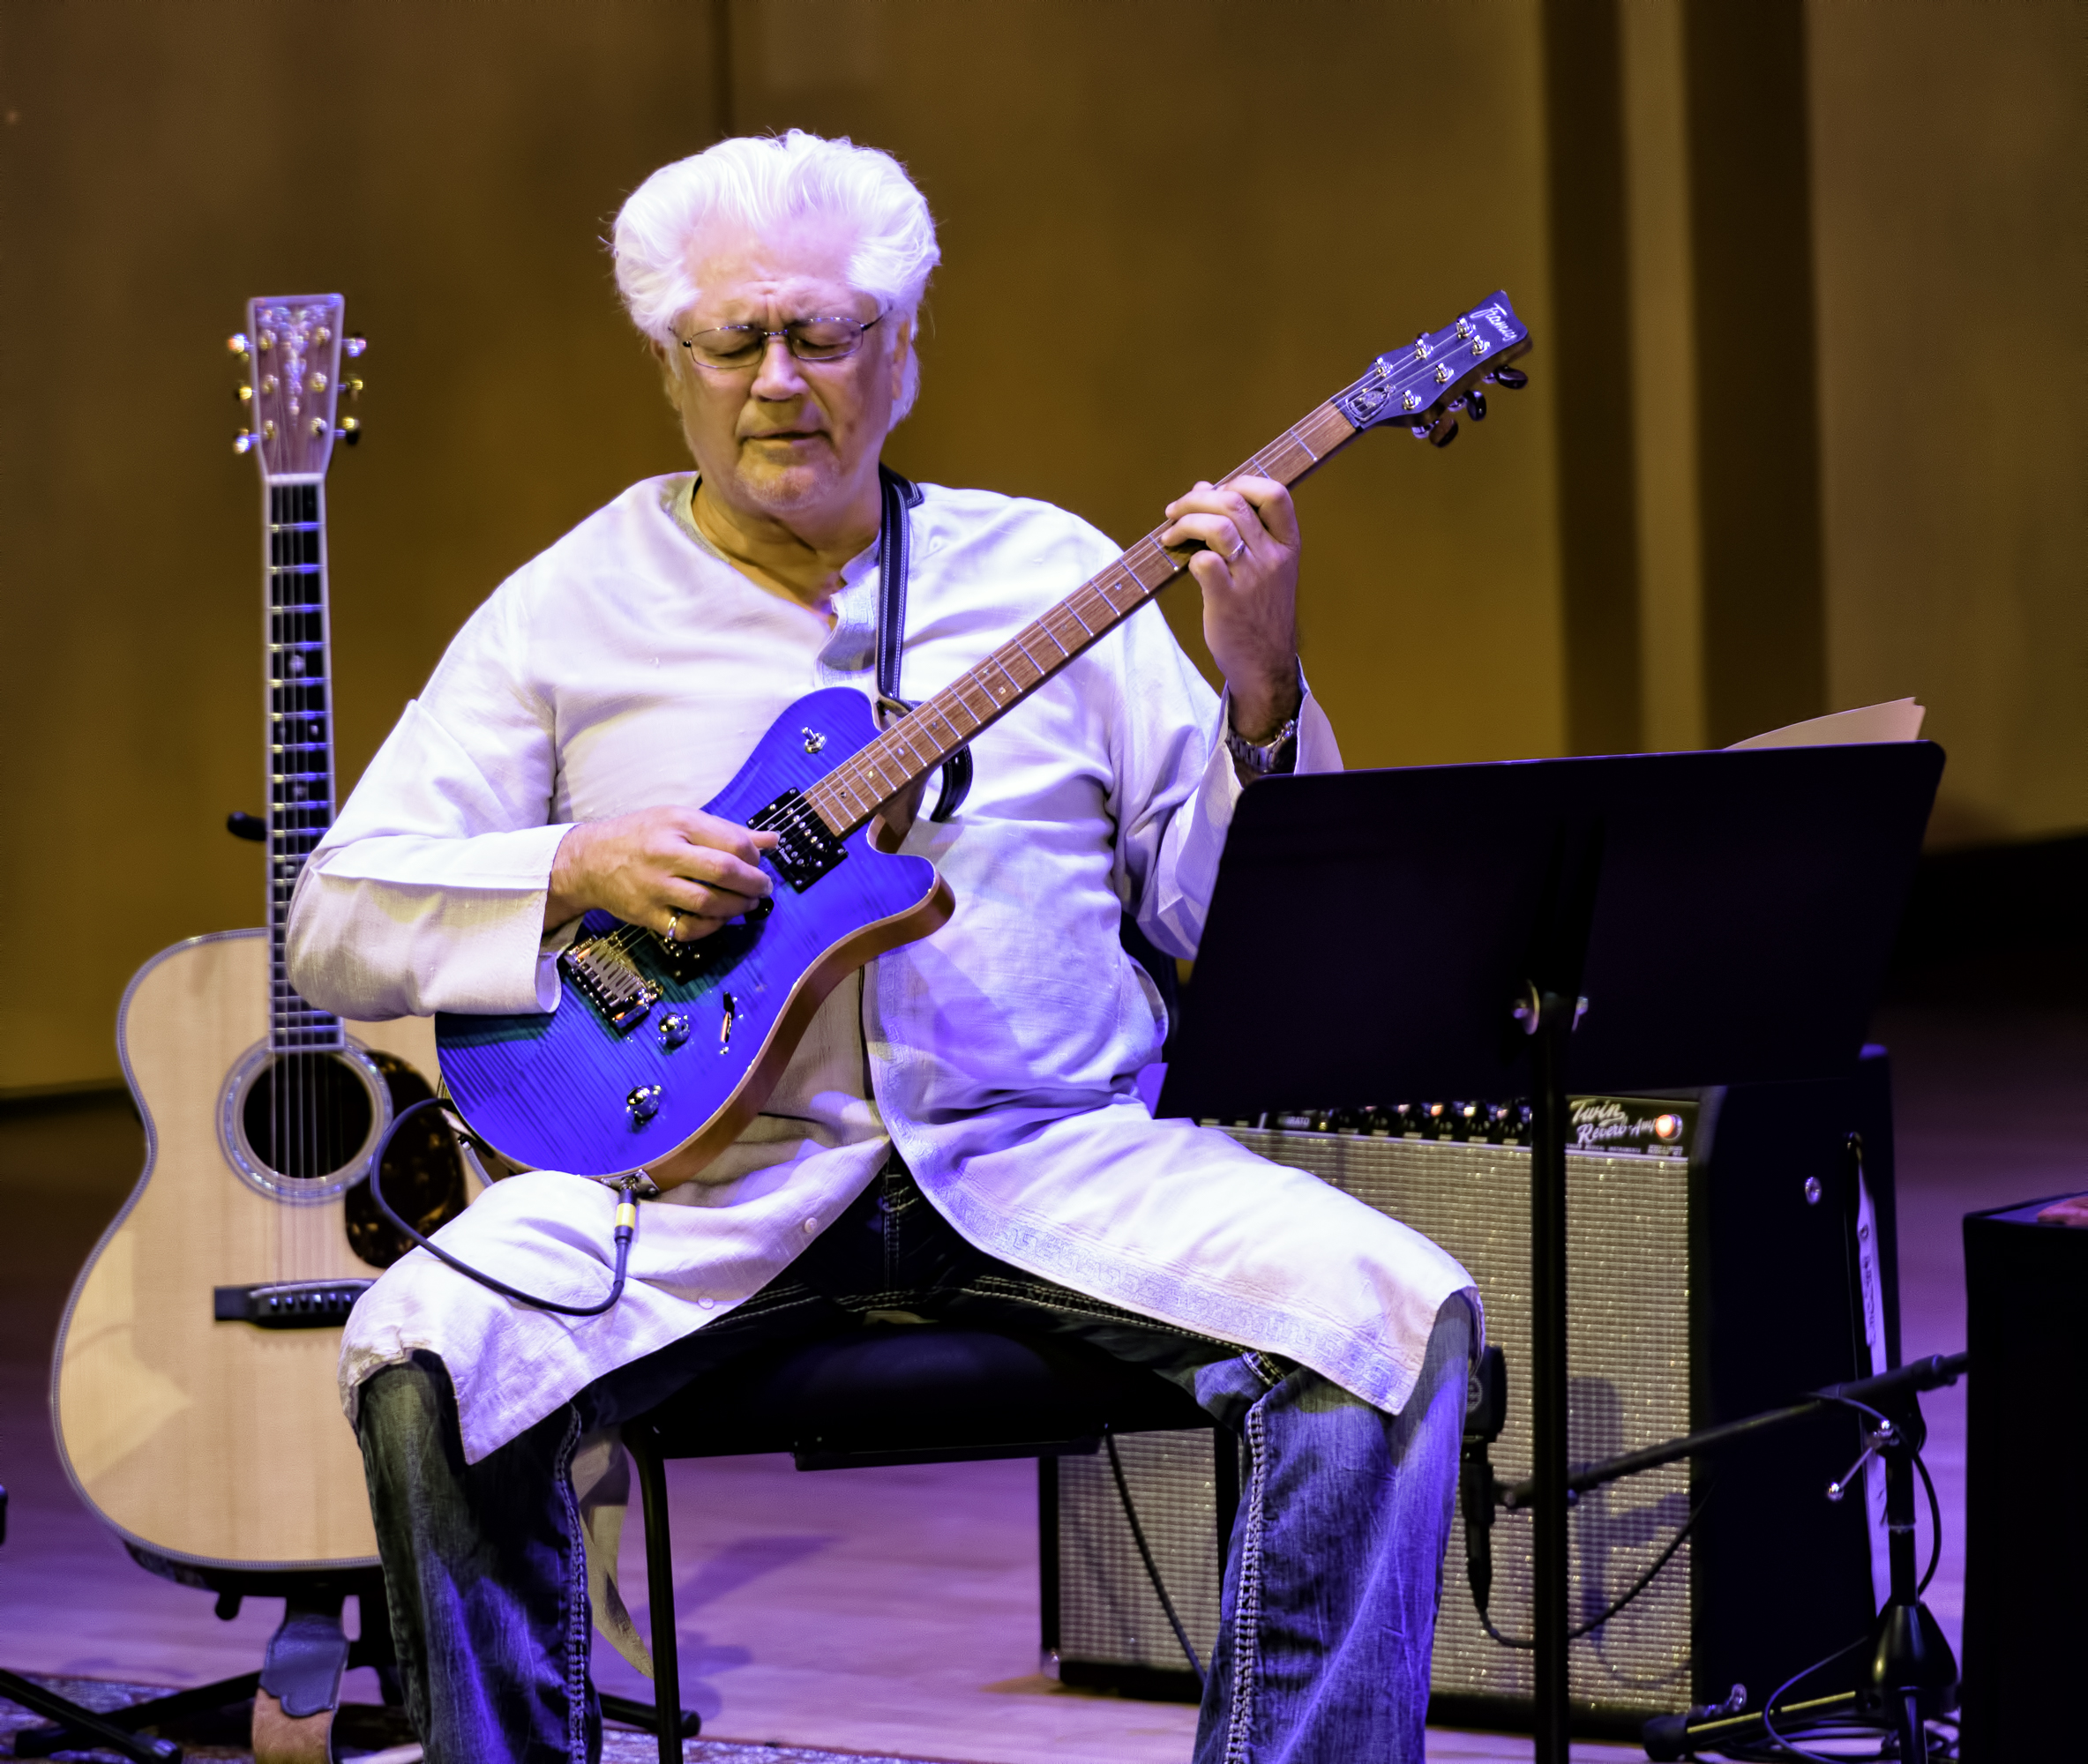 Larry Coryell With George Brooks And Bombay Jazz At The Musical Instrument Museum (mim) In Phoenix